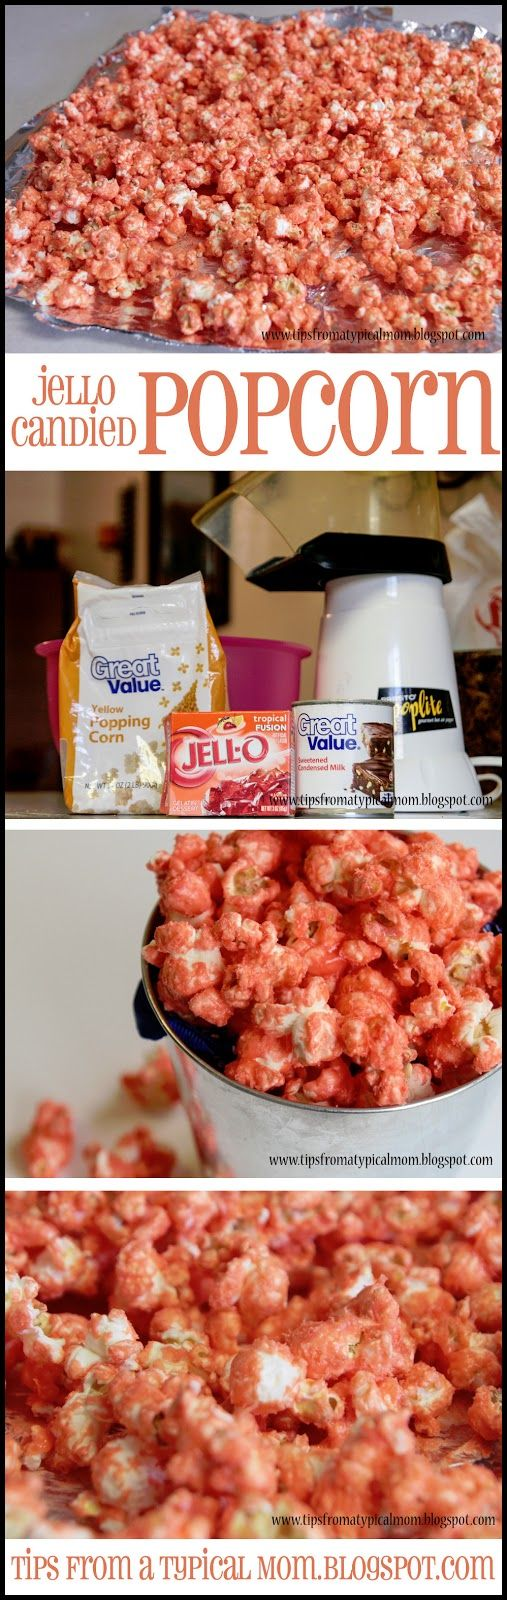 Tips from a Typical Mom: Tropical Jello Candied Popcorn